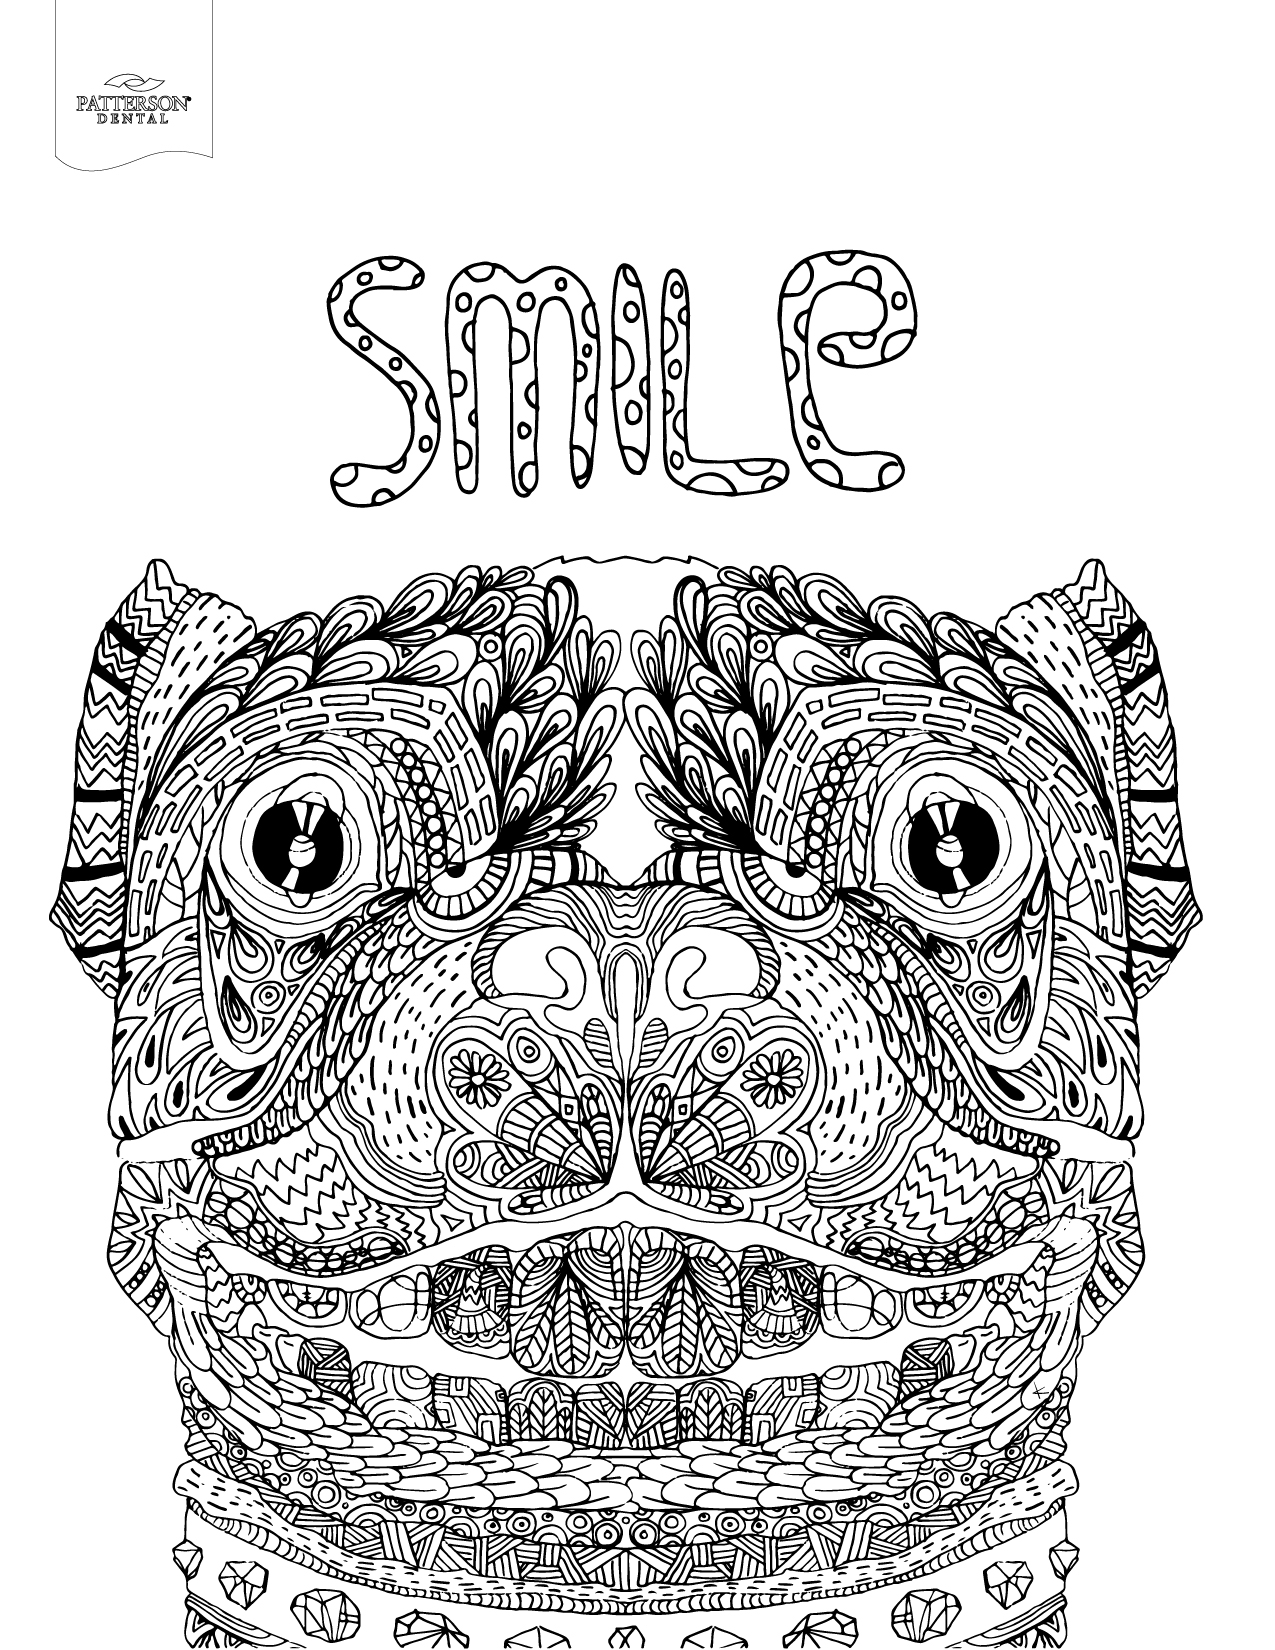 smiling dog coloring page from patterson dental - Coloring Stuff